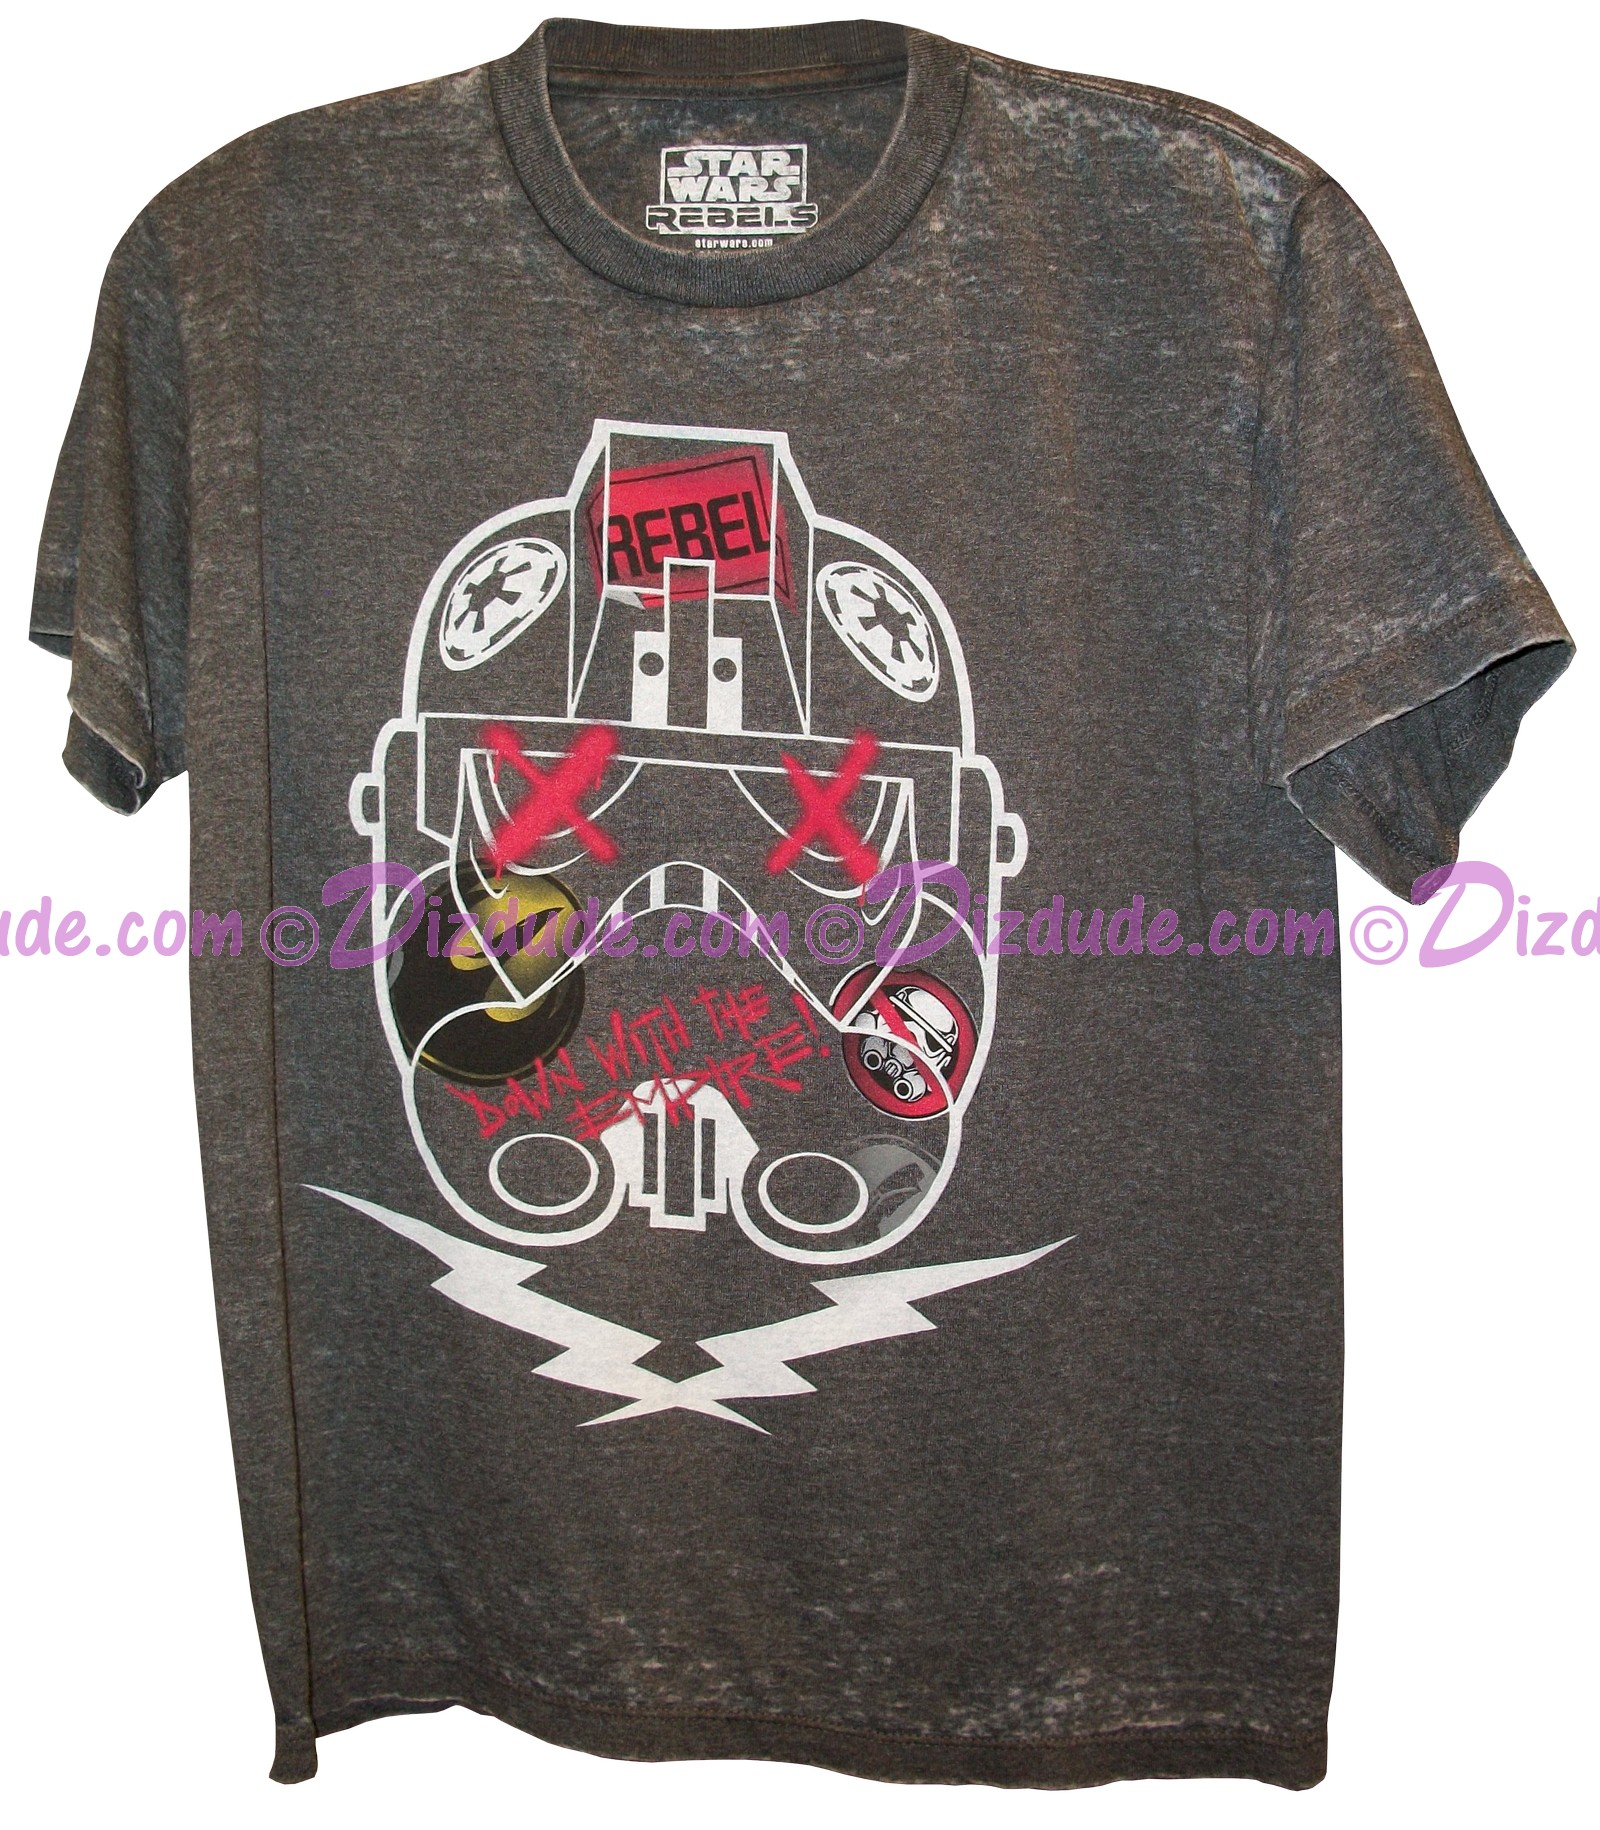 REBEL's Graffit Youth T-Shirt  - Disney Star Wars © Dizdude.com